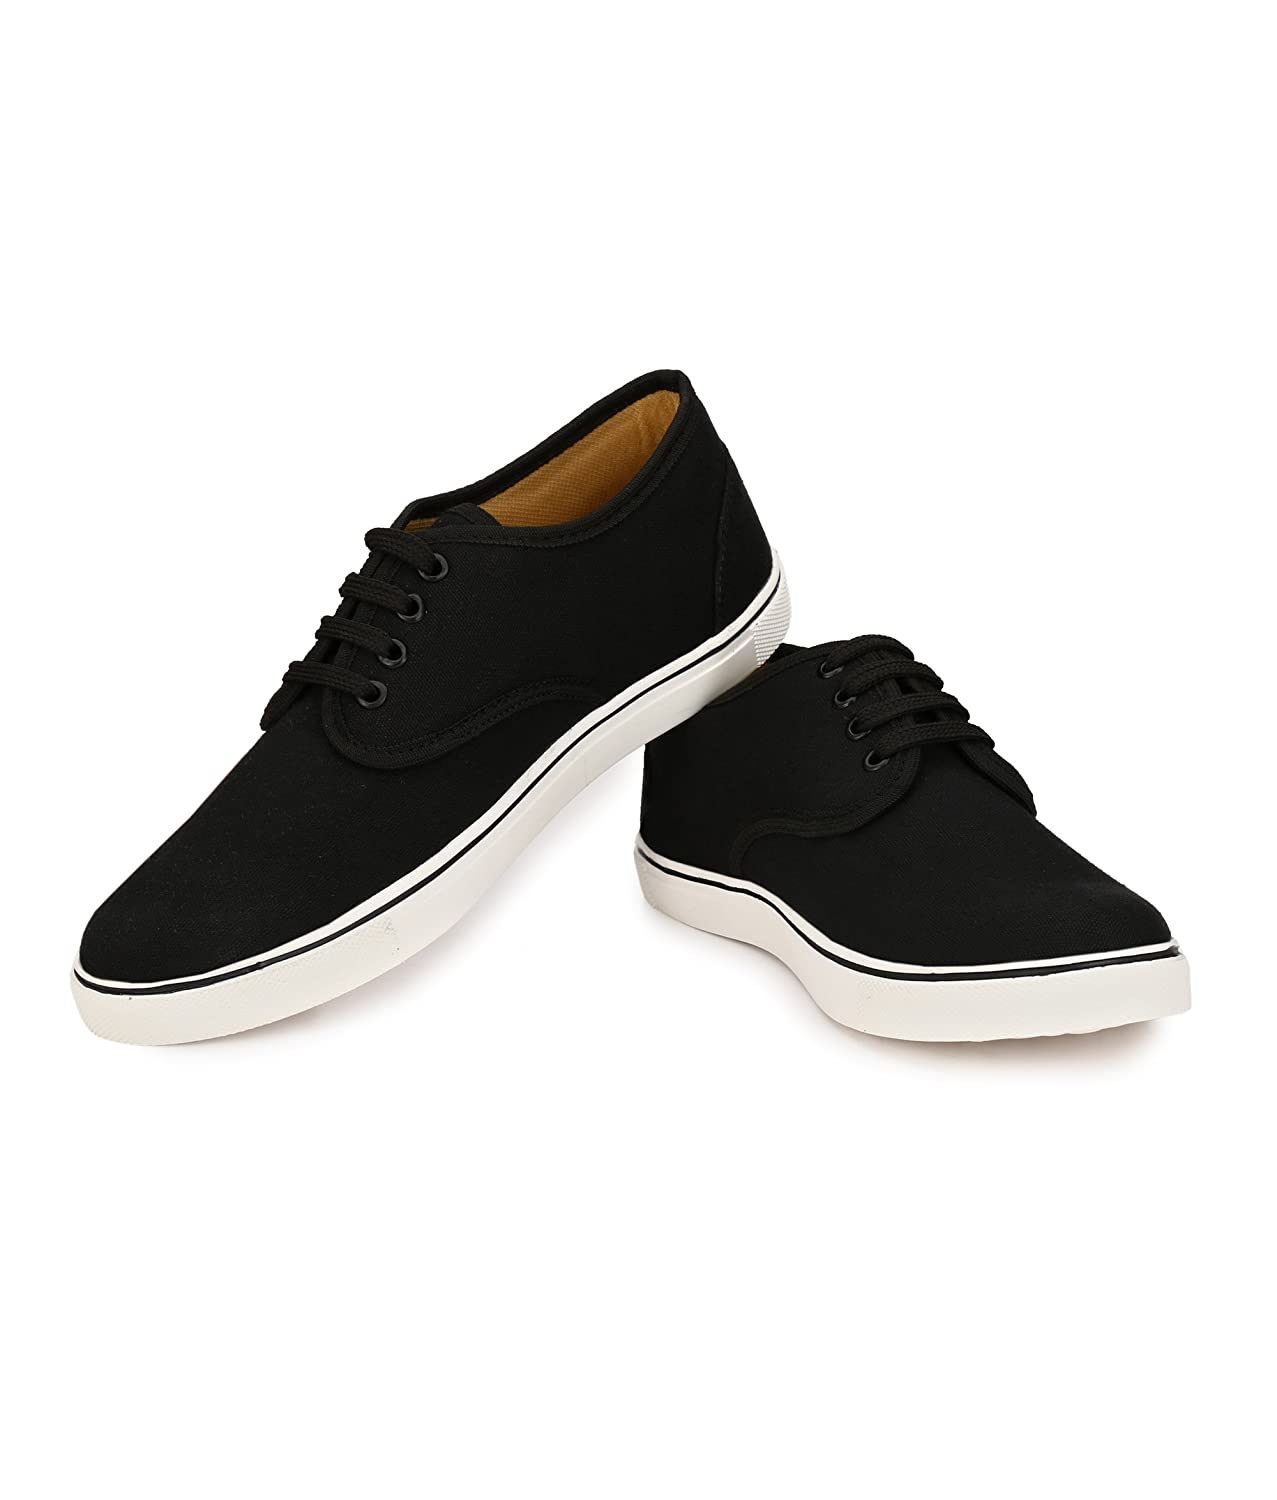 Yes I Can Drive A Stick Mens Casual Loafer Walking Lightweight Slip-On Sneaker Shoes